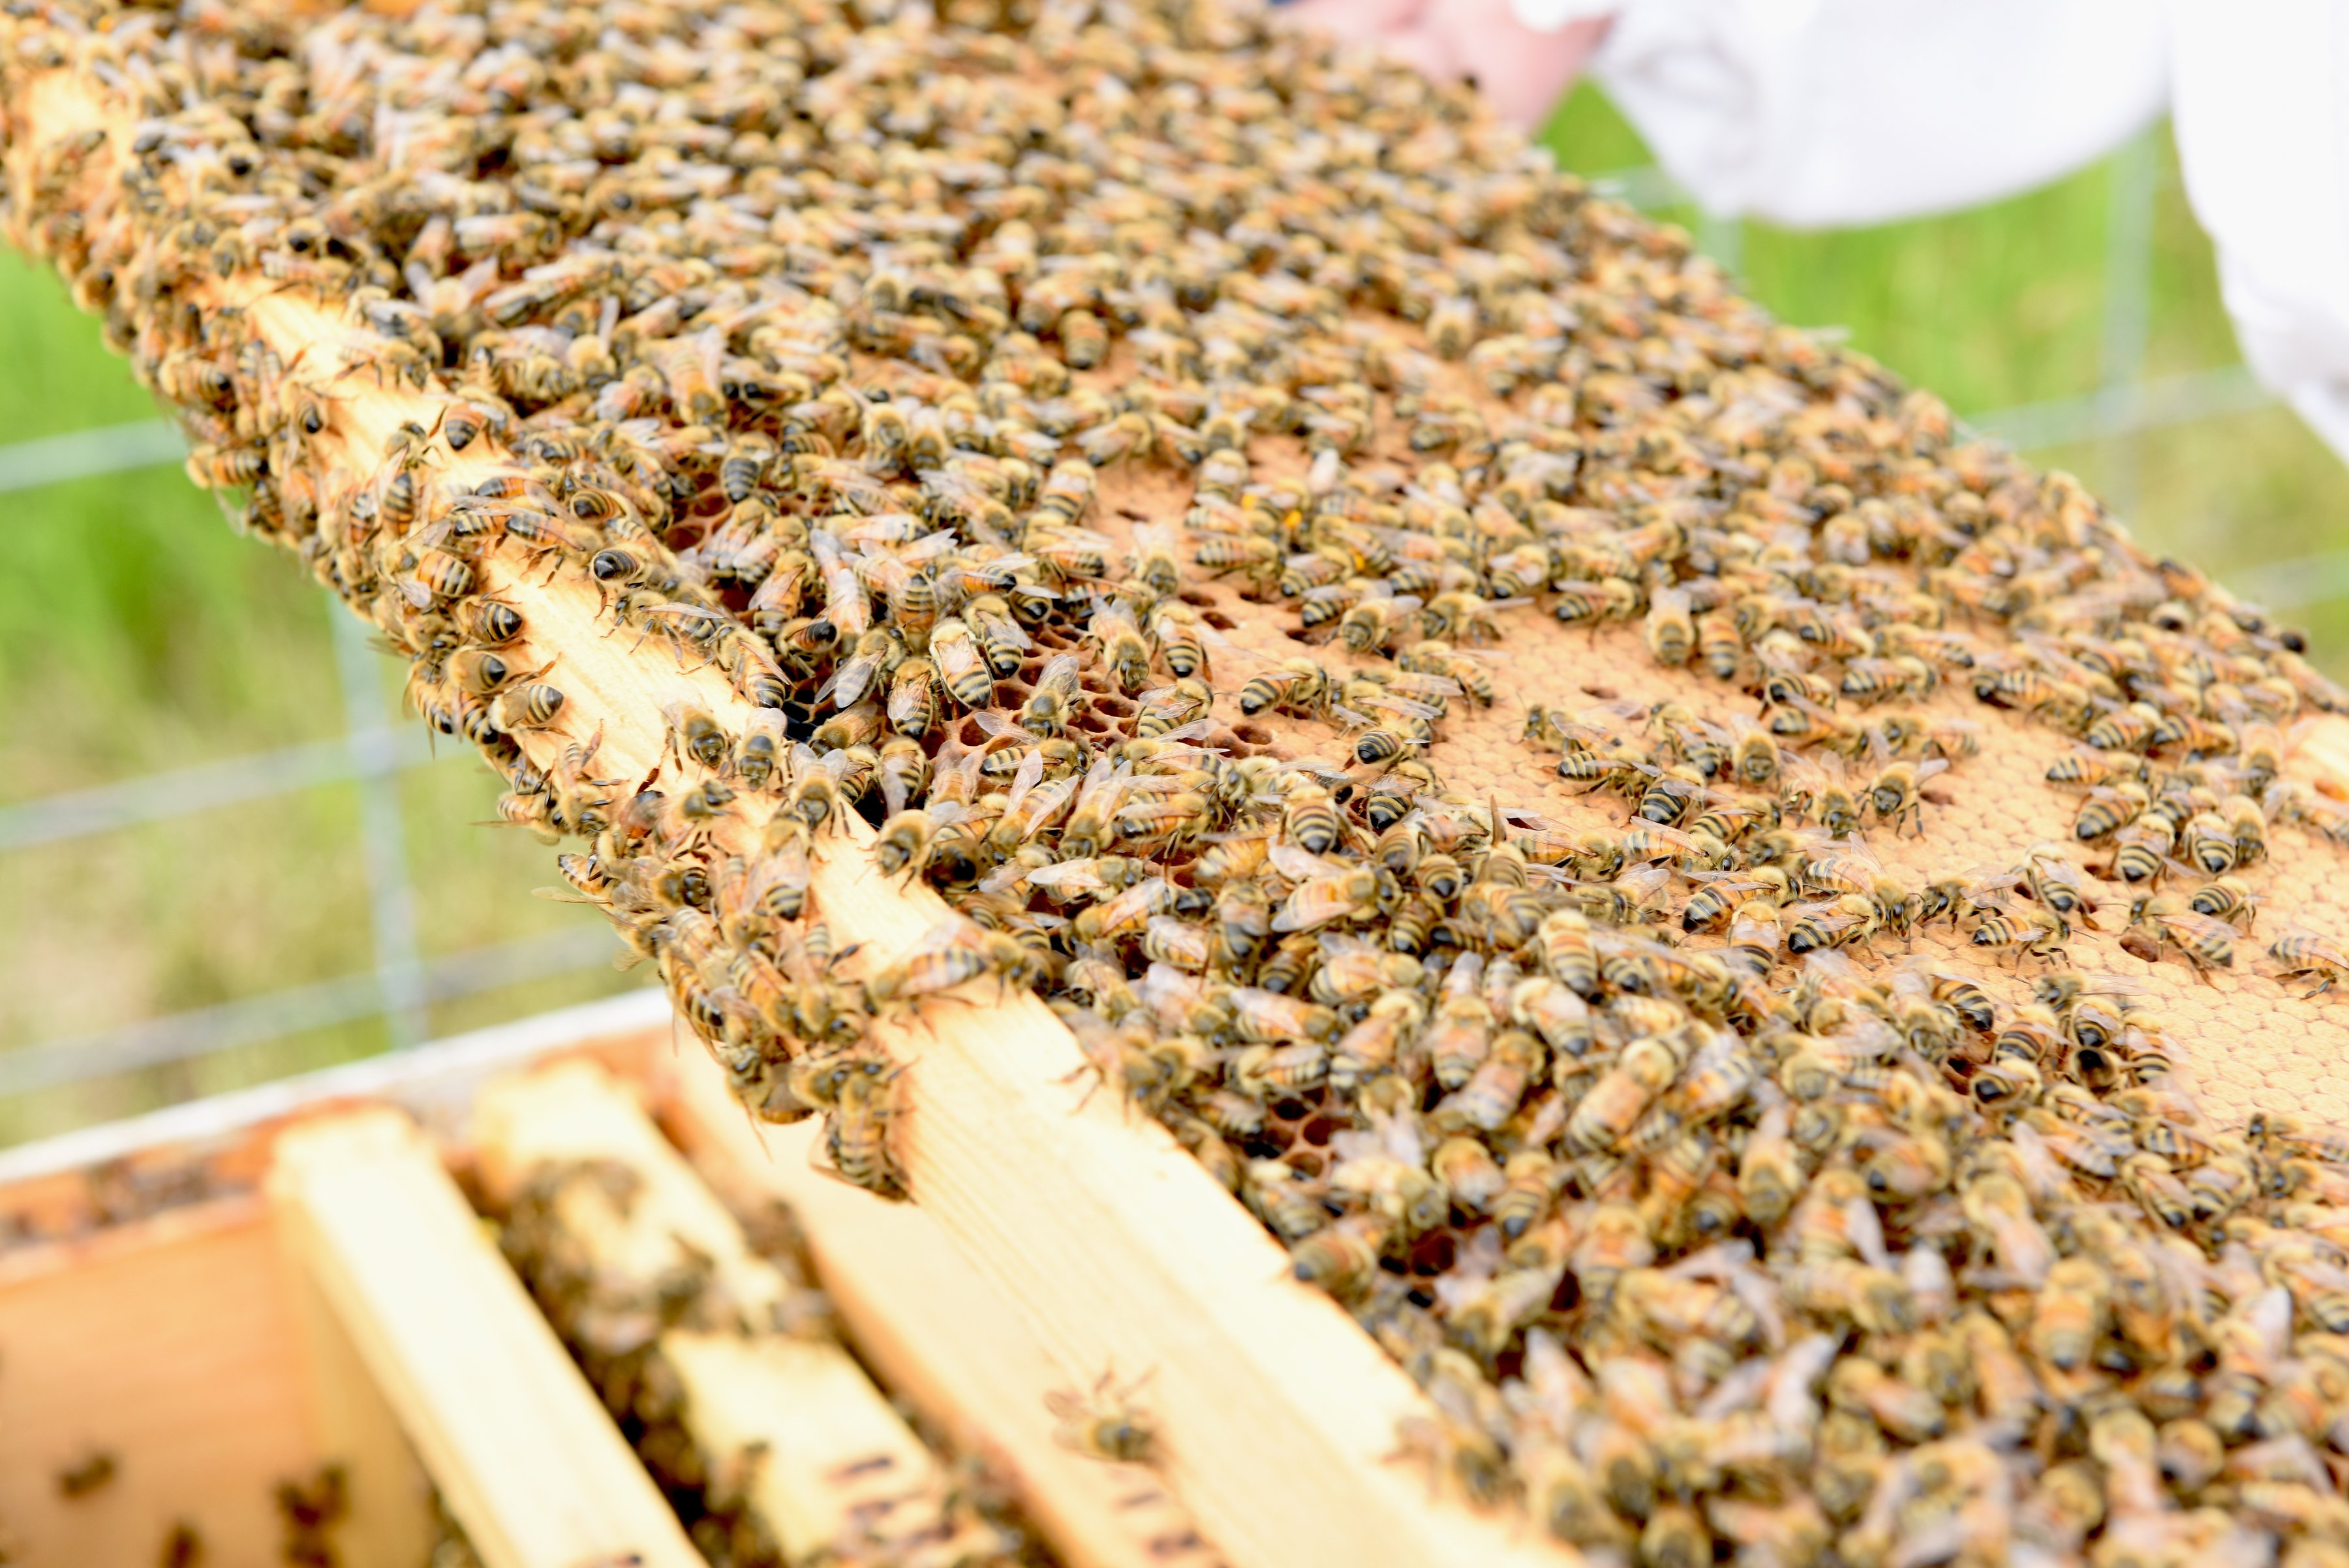 Get up close with the bees